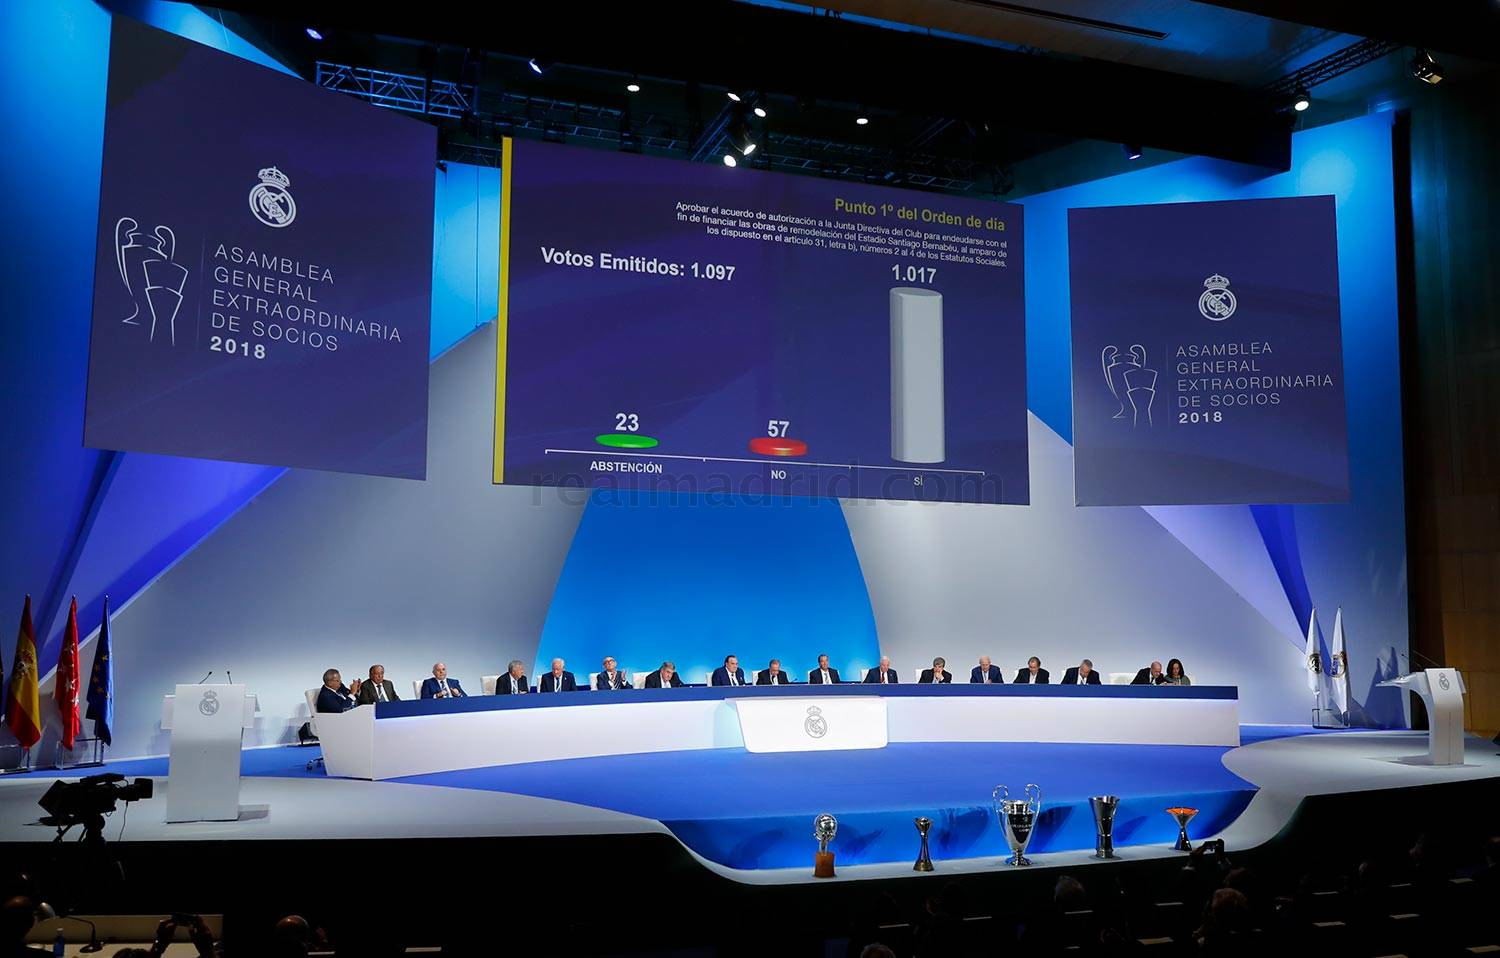 Real Madrid - Asamblea General Extraordinaria 2018 - 23-09-2018